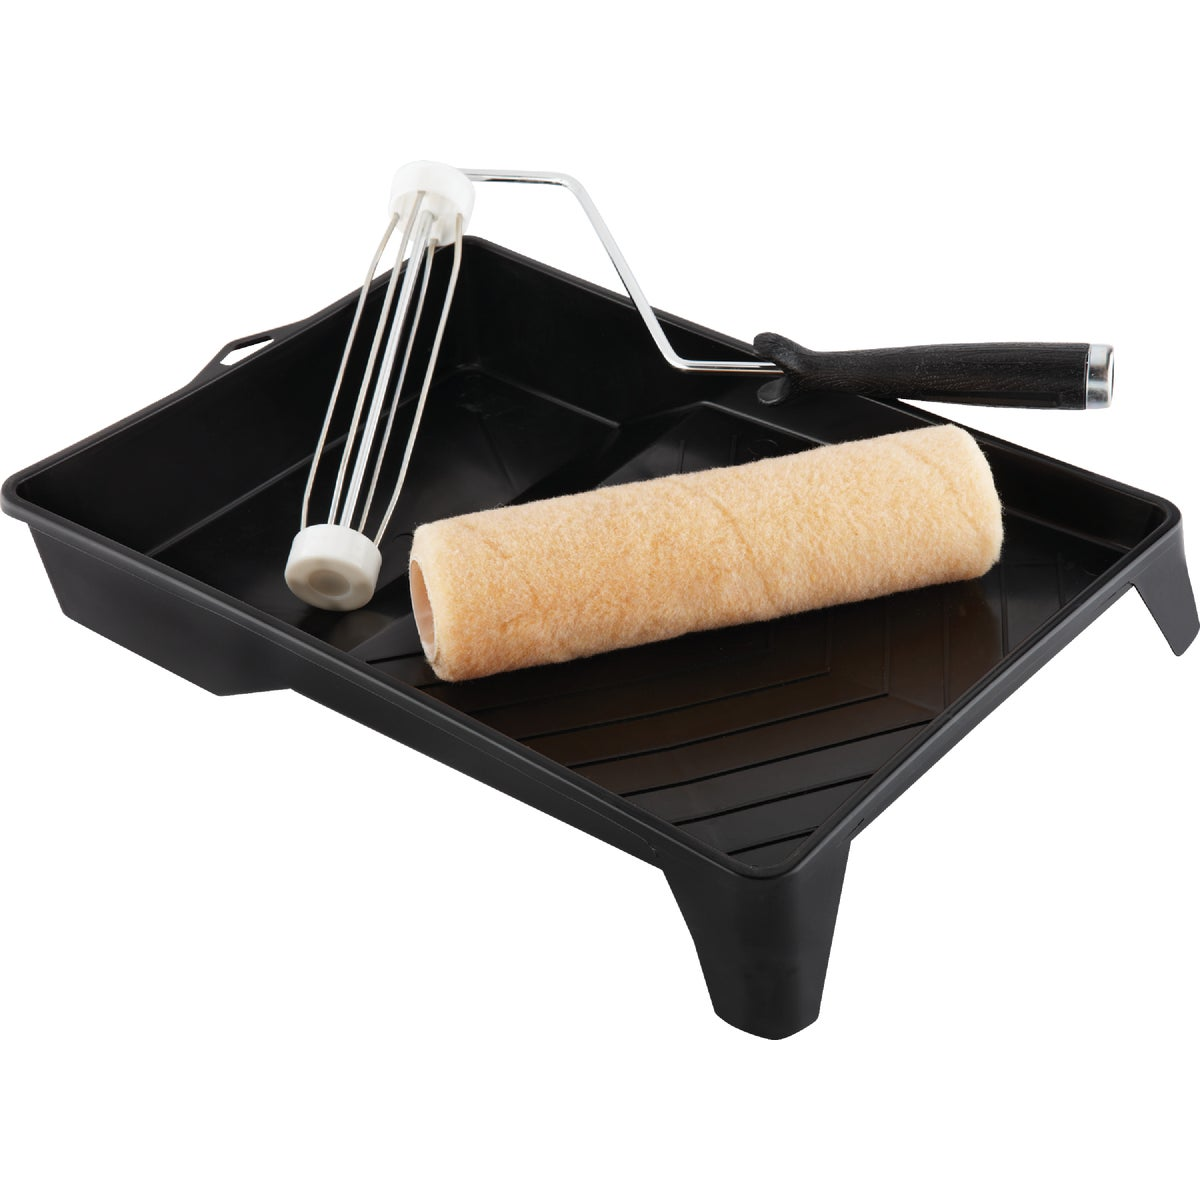 3PC PAN&ROLLER SET - 781434 by Do it Best